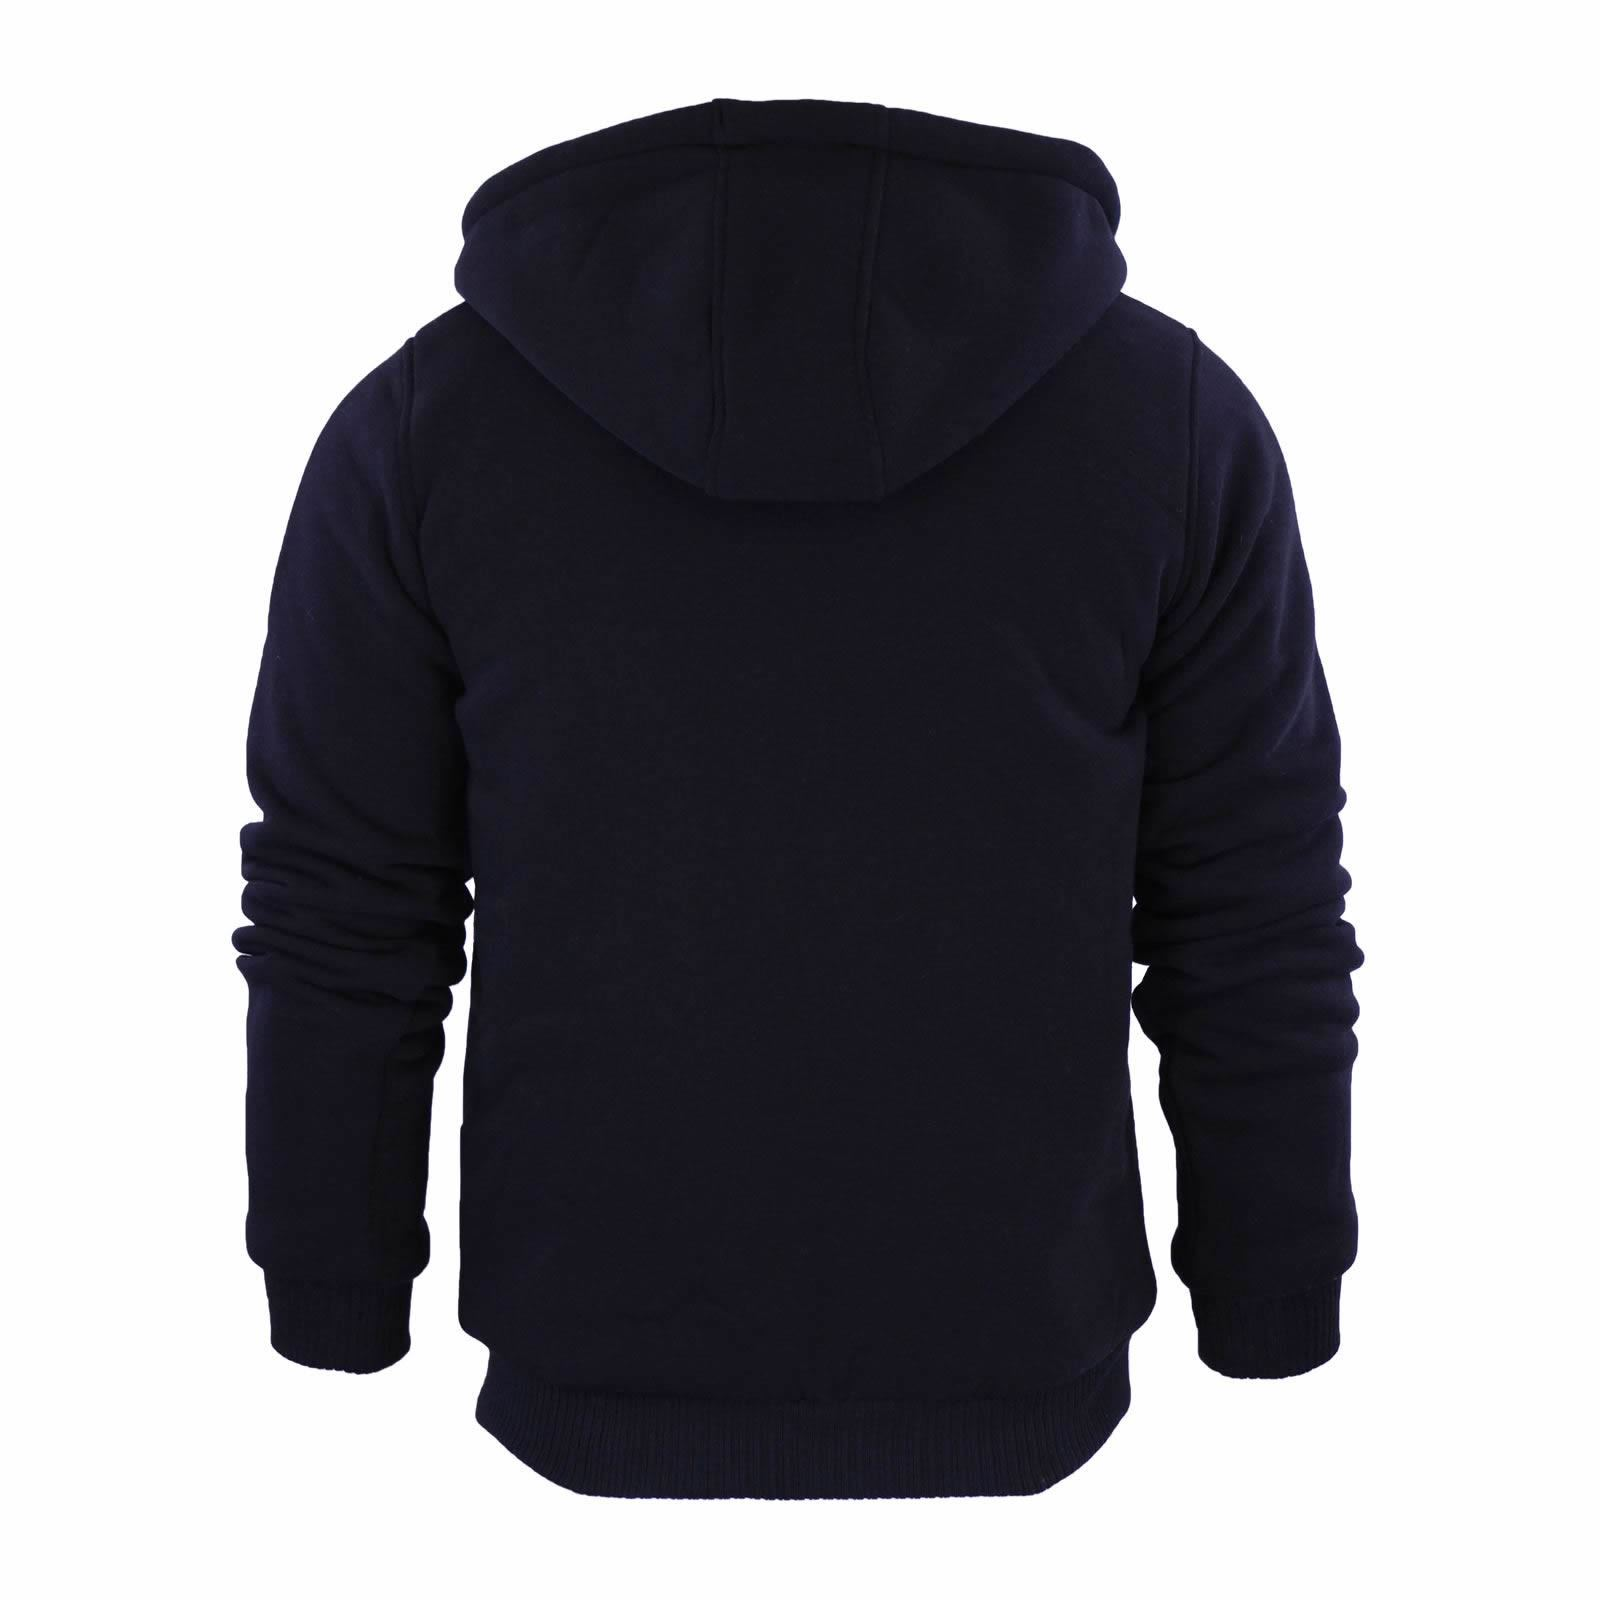 Mens-Hoodie-Brave-Soul-Zone-Sherpa-Fleece-Lined-Zip-Up-Hooded-Sweater thumbnail 6